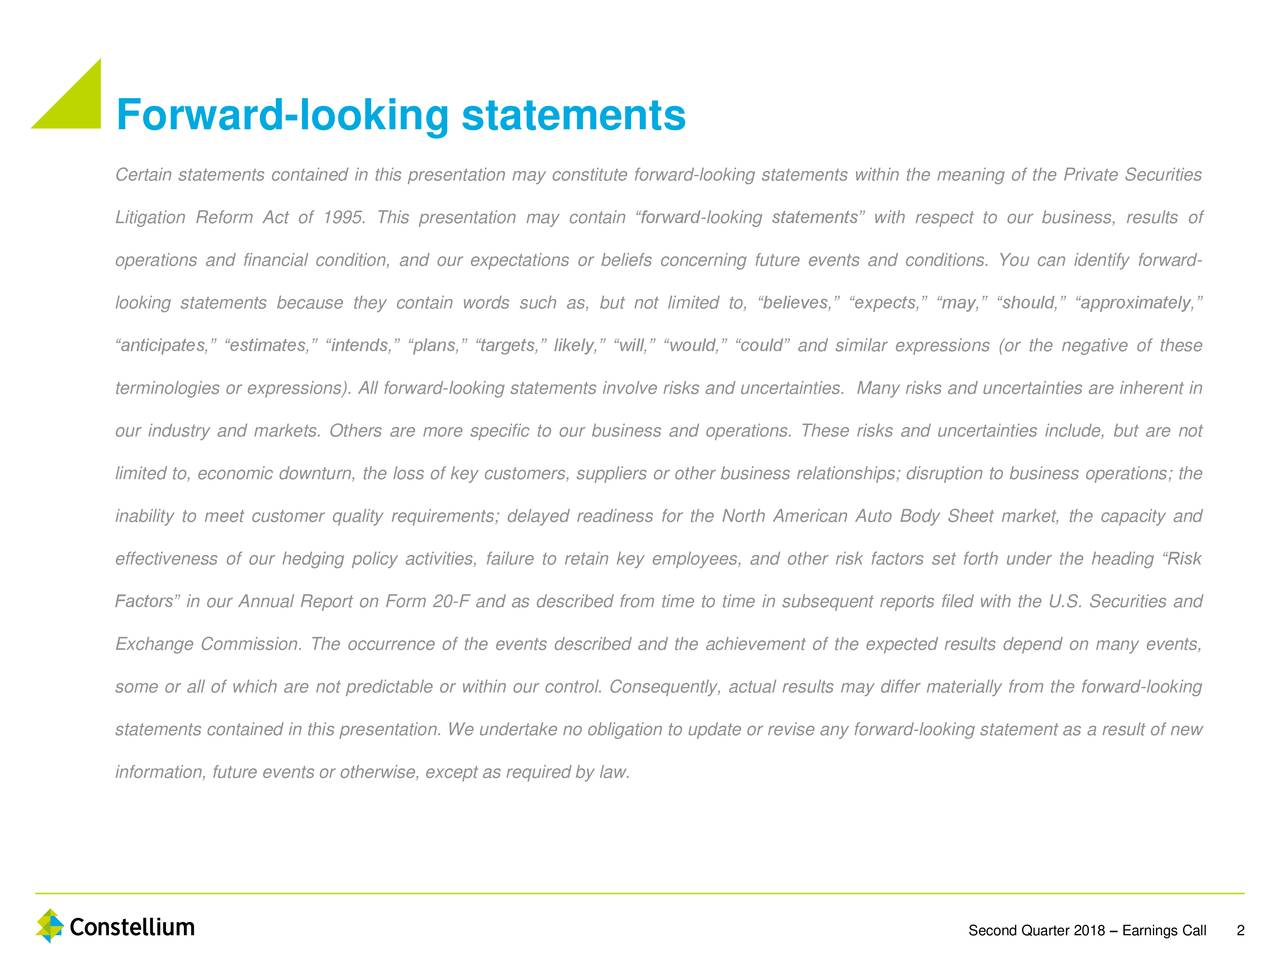 """Certain statements contained in this presentation may constitute forward-looking statements within the meaning of the Private Securities Litigation Reform Act of 1995. This presentation may contain """"forward-looking statements"""" with respect to our business, results of operations and financial condition, and our expectations or beliefs concerning future events and conditions. You can identify forward- looking statements because they contain words such as, but not limited to, """"believes,"""" """"expects,"""" """"may,"""" """"should,"""" """"approximately,"""" """"anticipates,"""" """"estimates,"""" """"intends,"""" """"plans,"""" """"targets,"""" likely,"""" """"will,"""" """"would,"""" """"could"""" and similar expressions (or the negative of these terminologies or expressions). All forward-looking statements involve risks and uncertainties. Many risks and uncertainties are inherent in our industry and markets. Others are more specific to our business and operations. These risks and uncertainties include, but are not limited to, economic downturn, the loss of key customers, suppliers or other business relationships; disruption to business operations; the inability to meet customer quality requirements; delayed readiness for the North American Auto Body Sheet market, the capacity and effectiveness of our hedging policy activities, failure to retain key employees, and other risk factors set forth under the heading """"Risk Factors"""" in our Annual Report on Form 20-F and as described from time to time in subsequent reports filed with the U.S. Securities and Exchange Commission. The occurrence of the events described and the achievement of the expected results depend on many events, some or all of which are not predictable or within our control. Consequently, actual results may differ materially from the forward-looking statements contained in this presentation. We undertake no obligation to update or revise any forward-looking statement as a result of new information, future events or otherwise, except as required by law. Second Quarter 2018 – Earnings"""